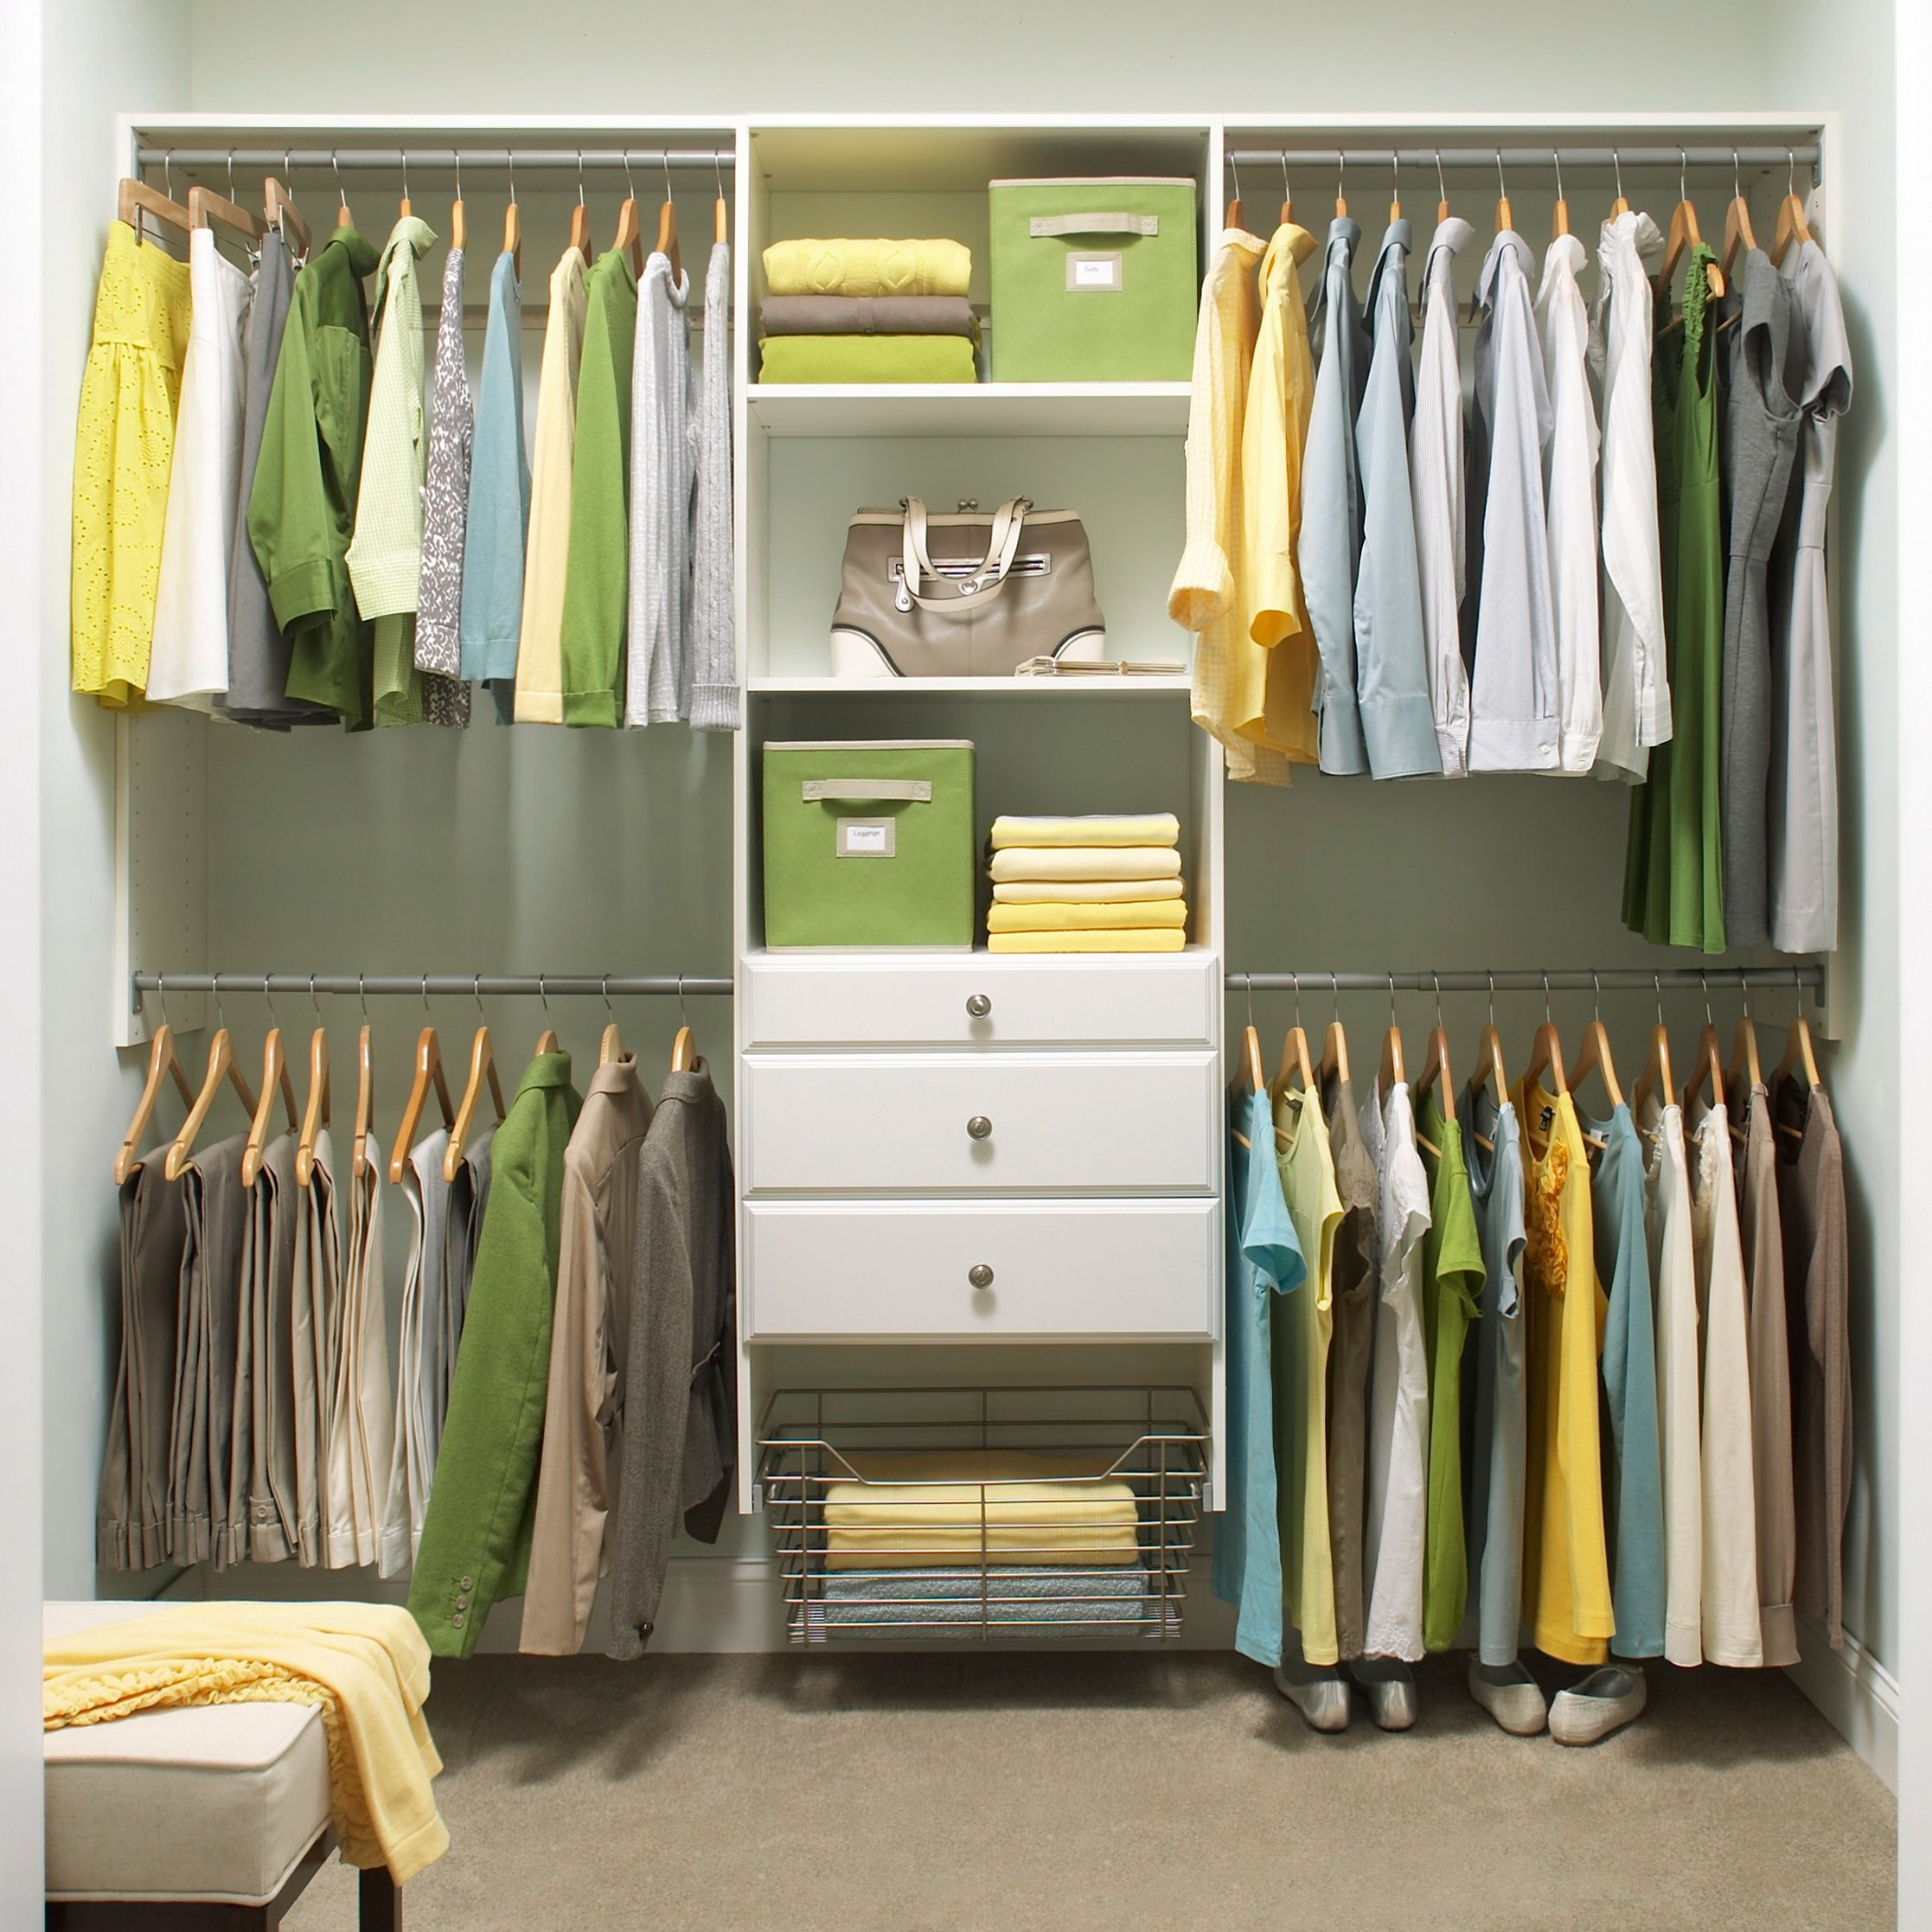 4 ways to think outside the closet martha stewart for Organized walk in closet